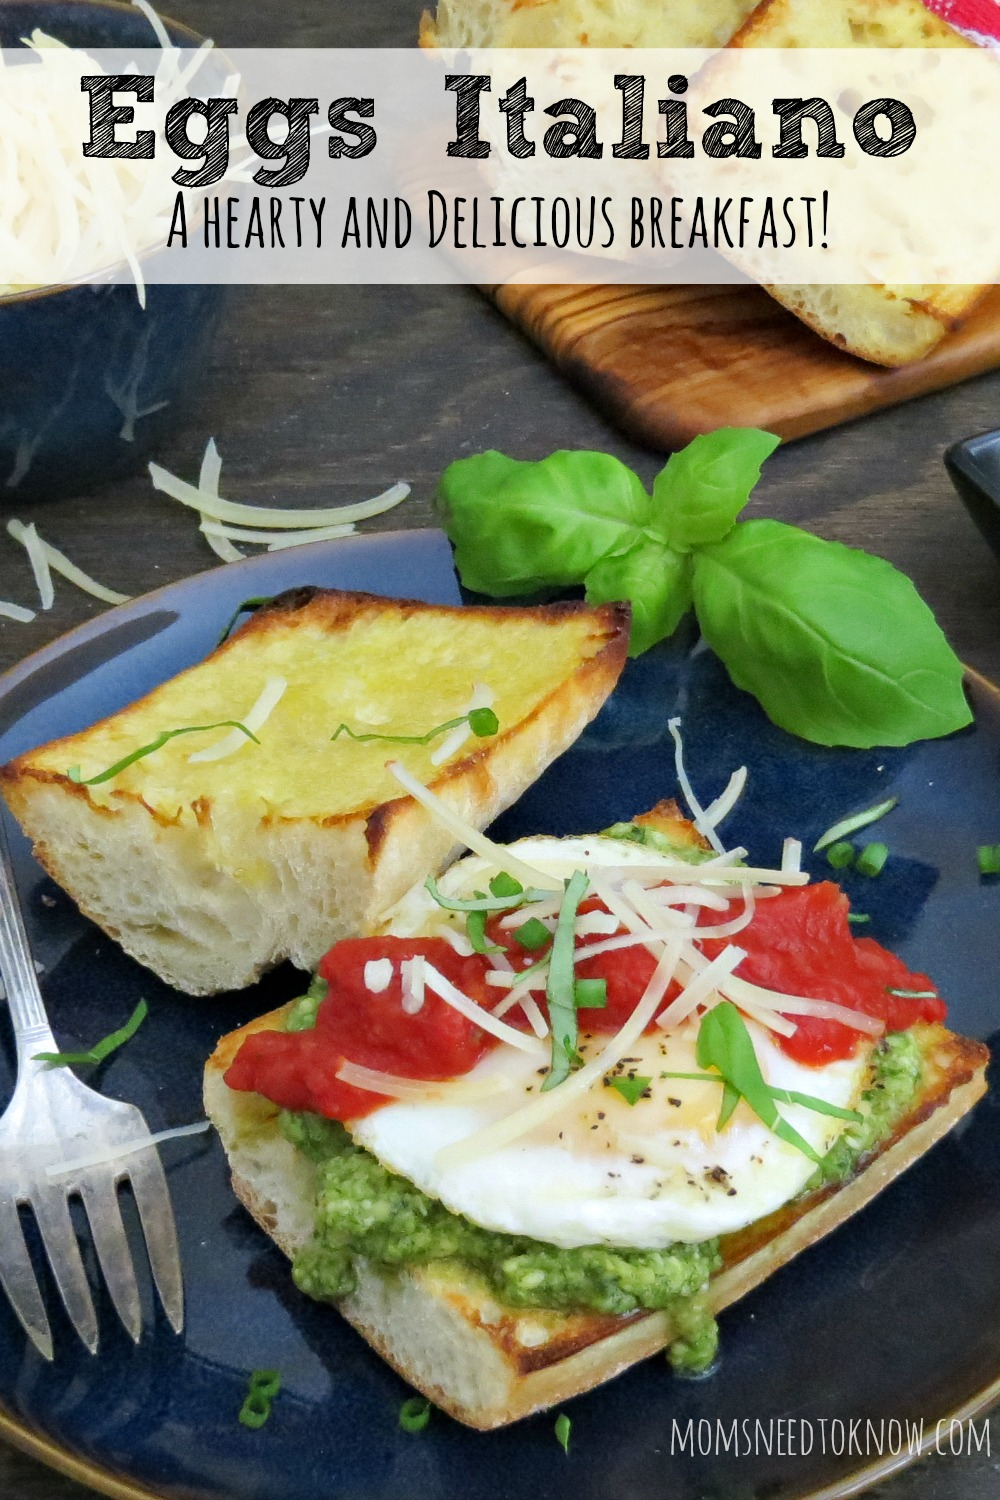 If you love Eggs Benedict and the flavors of Italy, then you'll love this dish. The pesto and marinara add tons of fresh flavor and moisture, while the egg and cheese are salty, savory and satisfying.